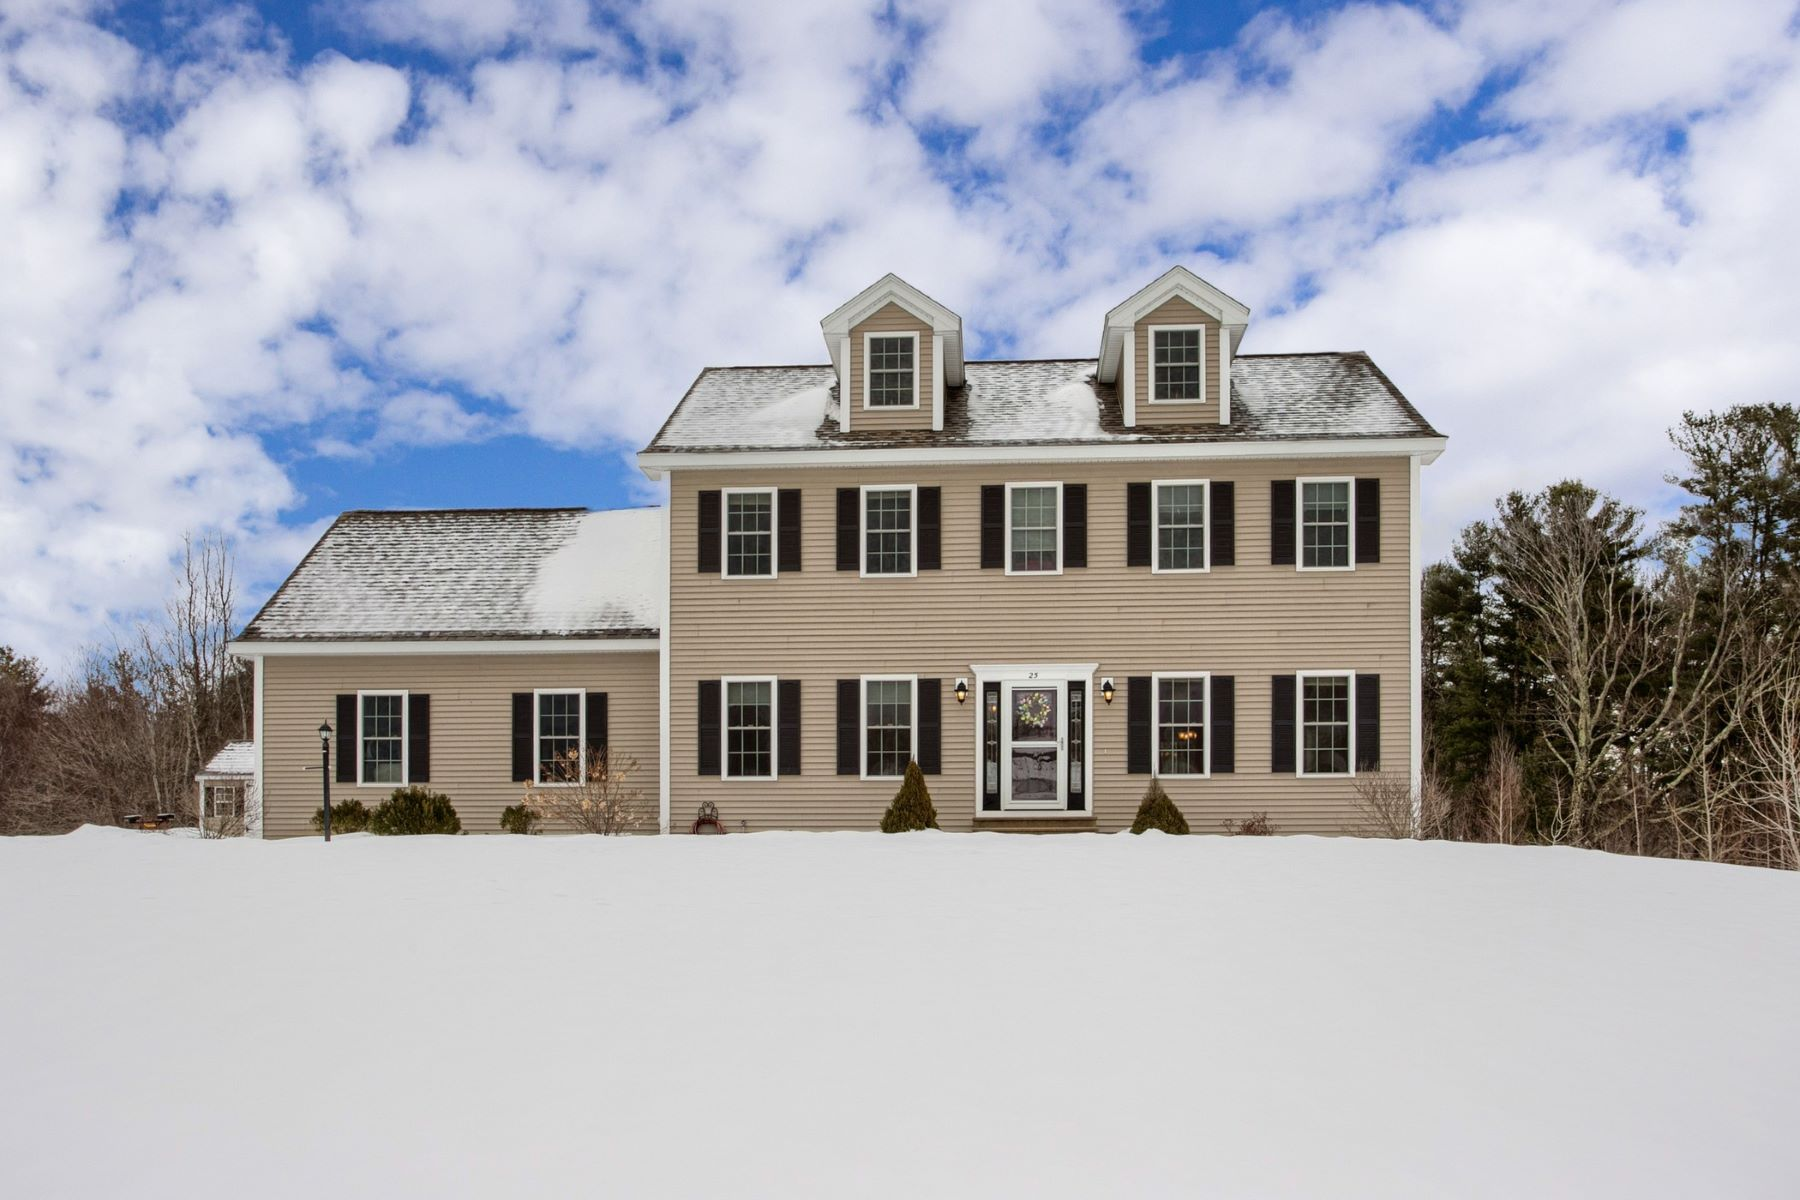 Single Family Home for Active at 25 Runaway Brook Road, Lancaster 25 Runaway Brook Rd Lancaster, Massachusetts 01523 United States